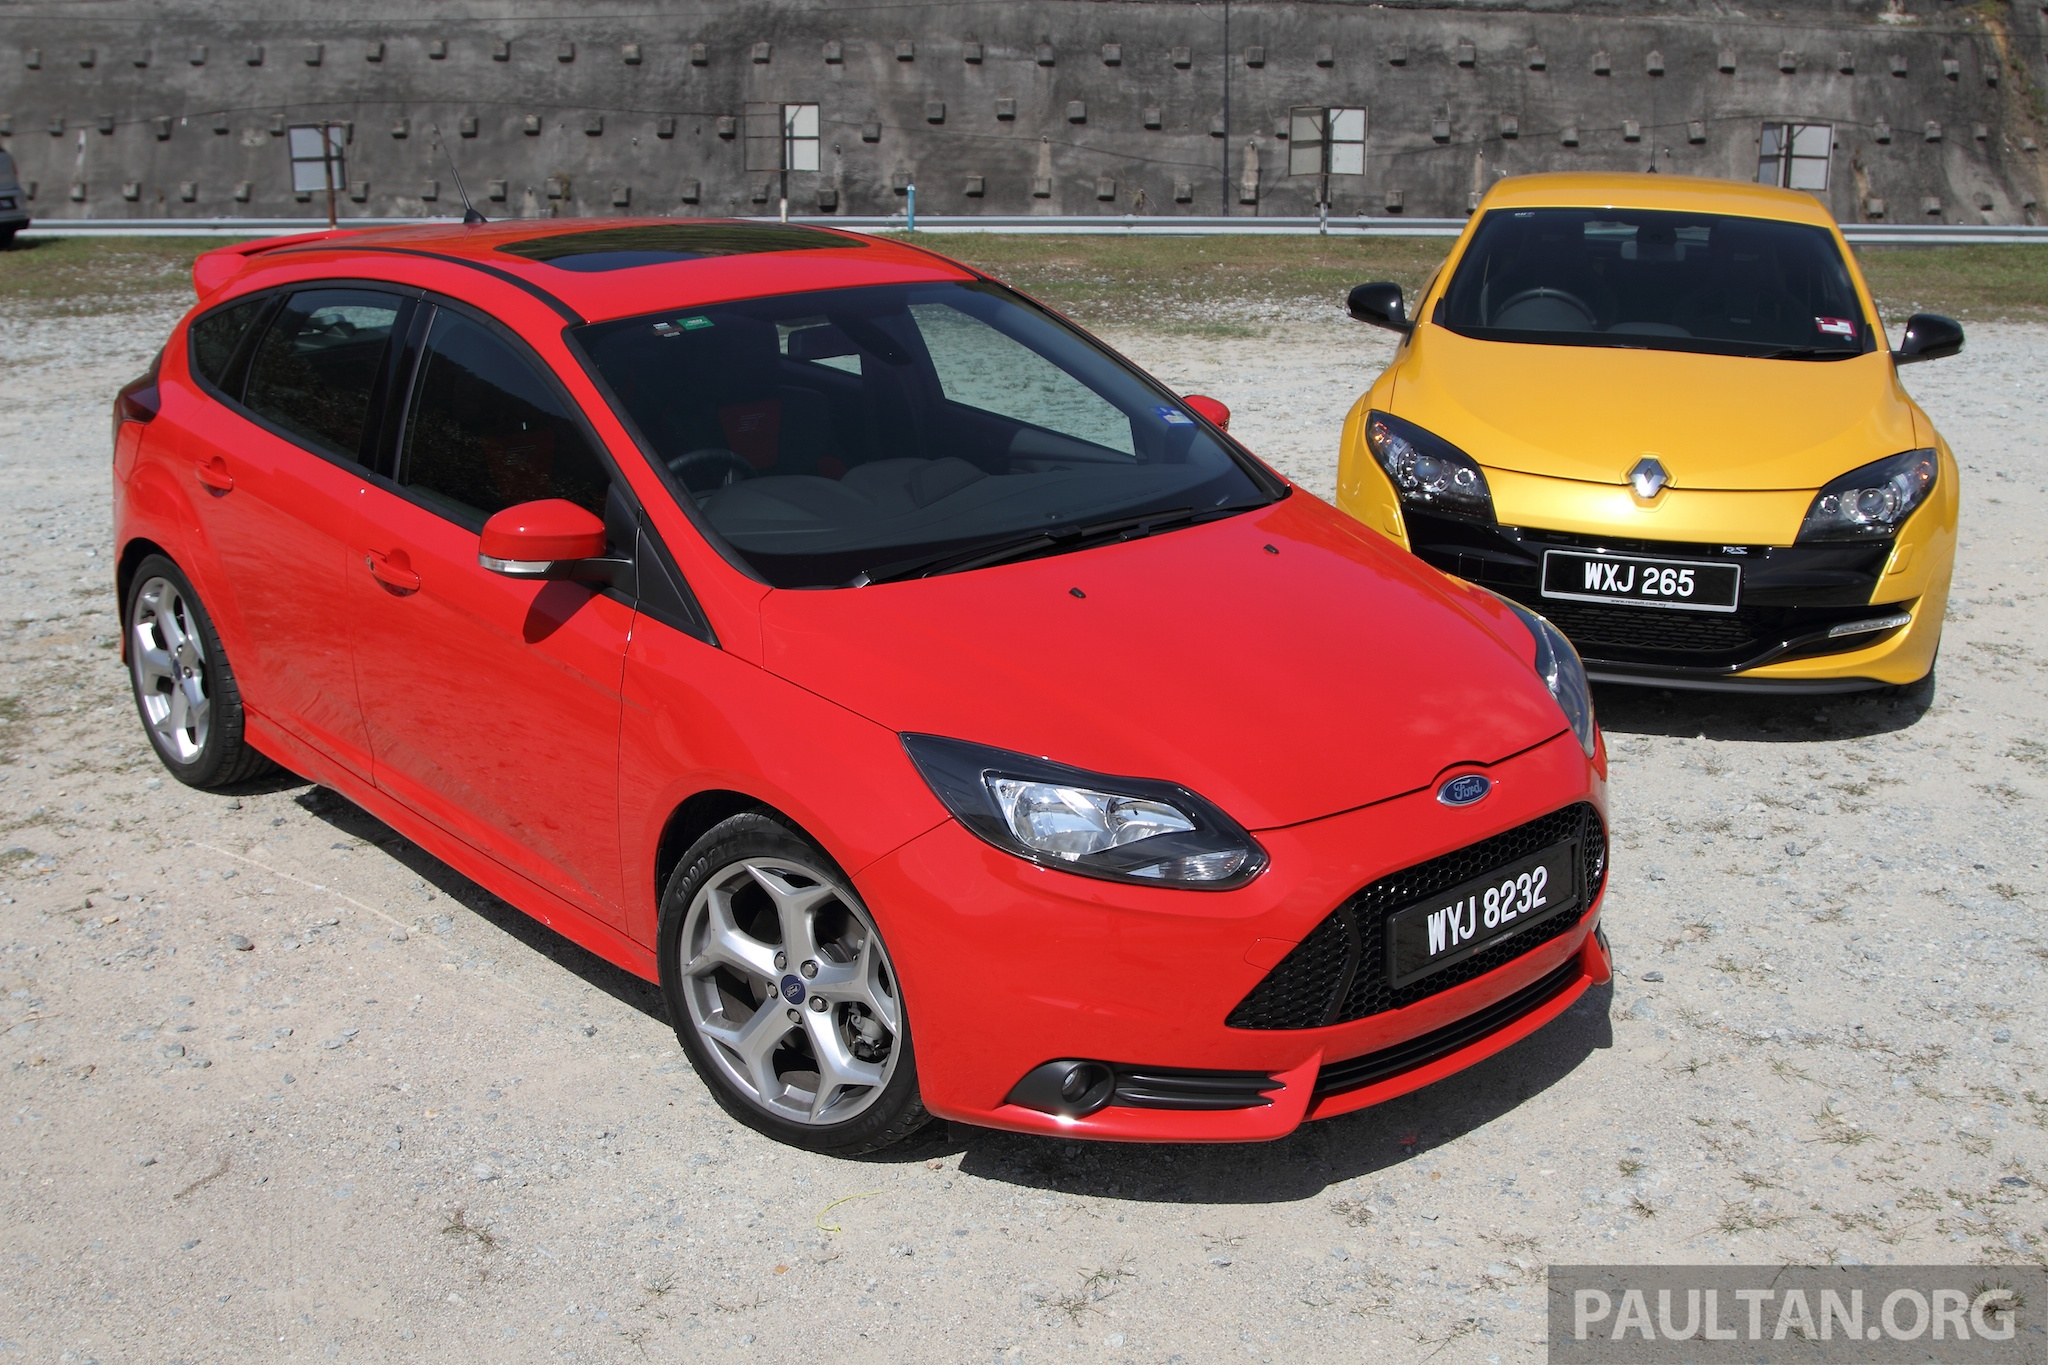 Back to Story: DRIVEN: Ford Focus ST vs Renault Megane RS 265